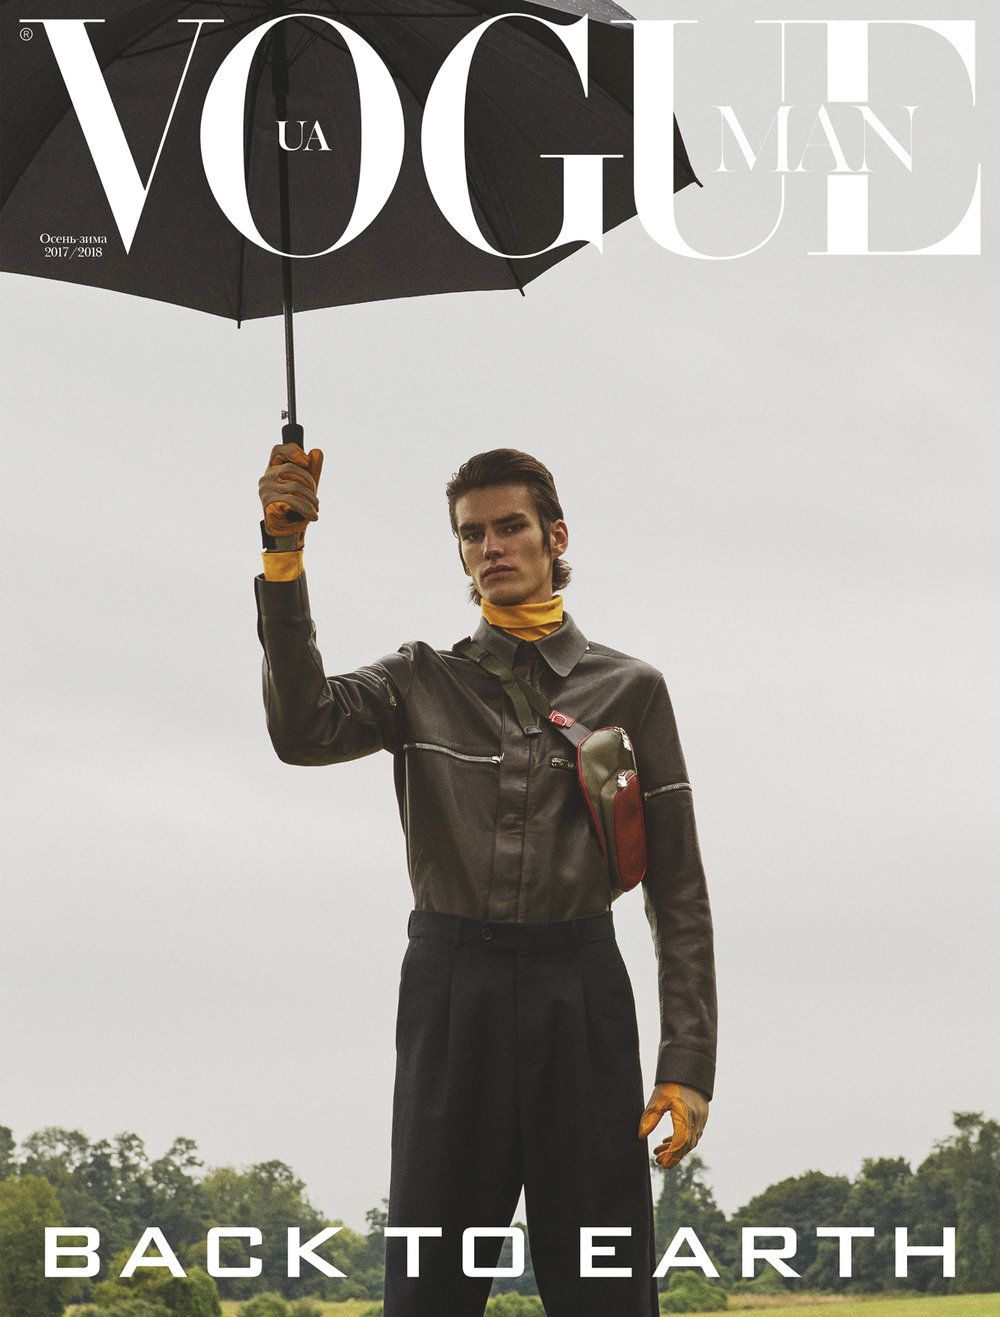 Vogue Man-EliasdePOOT-Cover.jpg